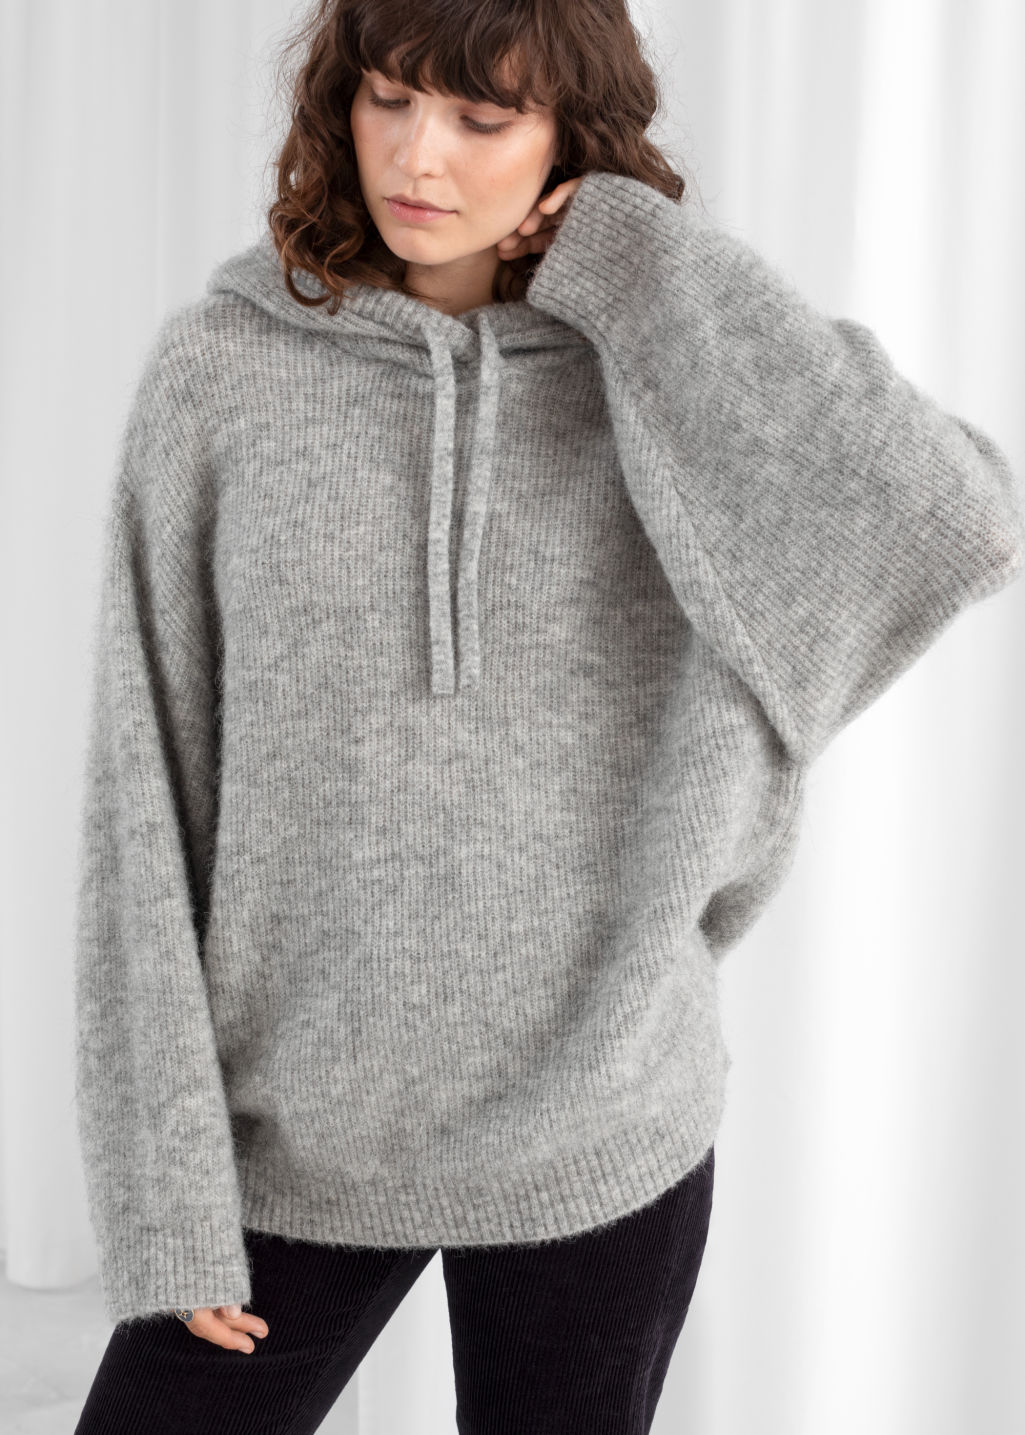 This Stylish Under-$100 Hooded Sweatshirt Is a Dream